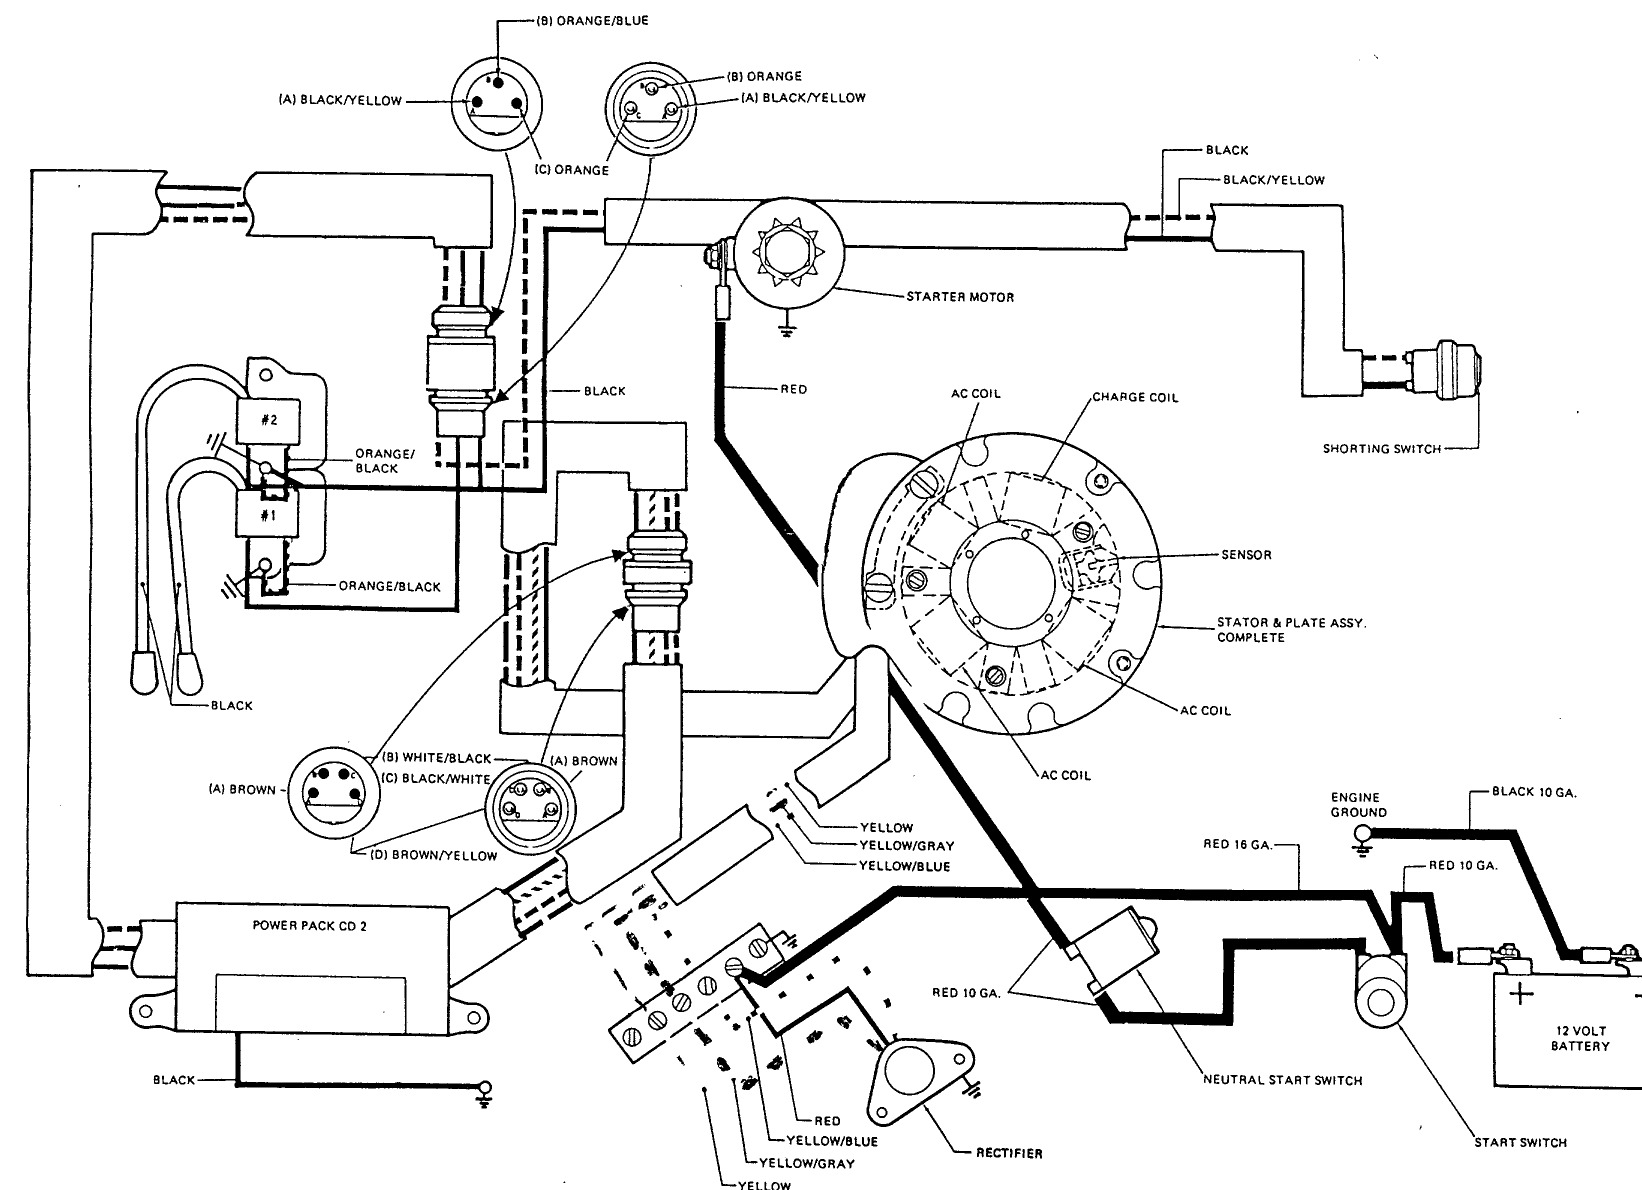 electrical diagram electric maintaining johnson 9 9 troubleshooting wiring diagram for 30 hp johnson motor at mifinder.co